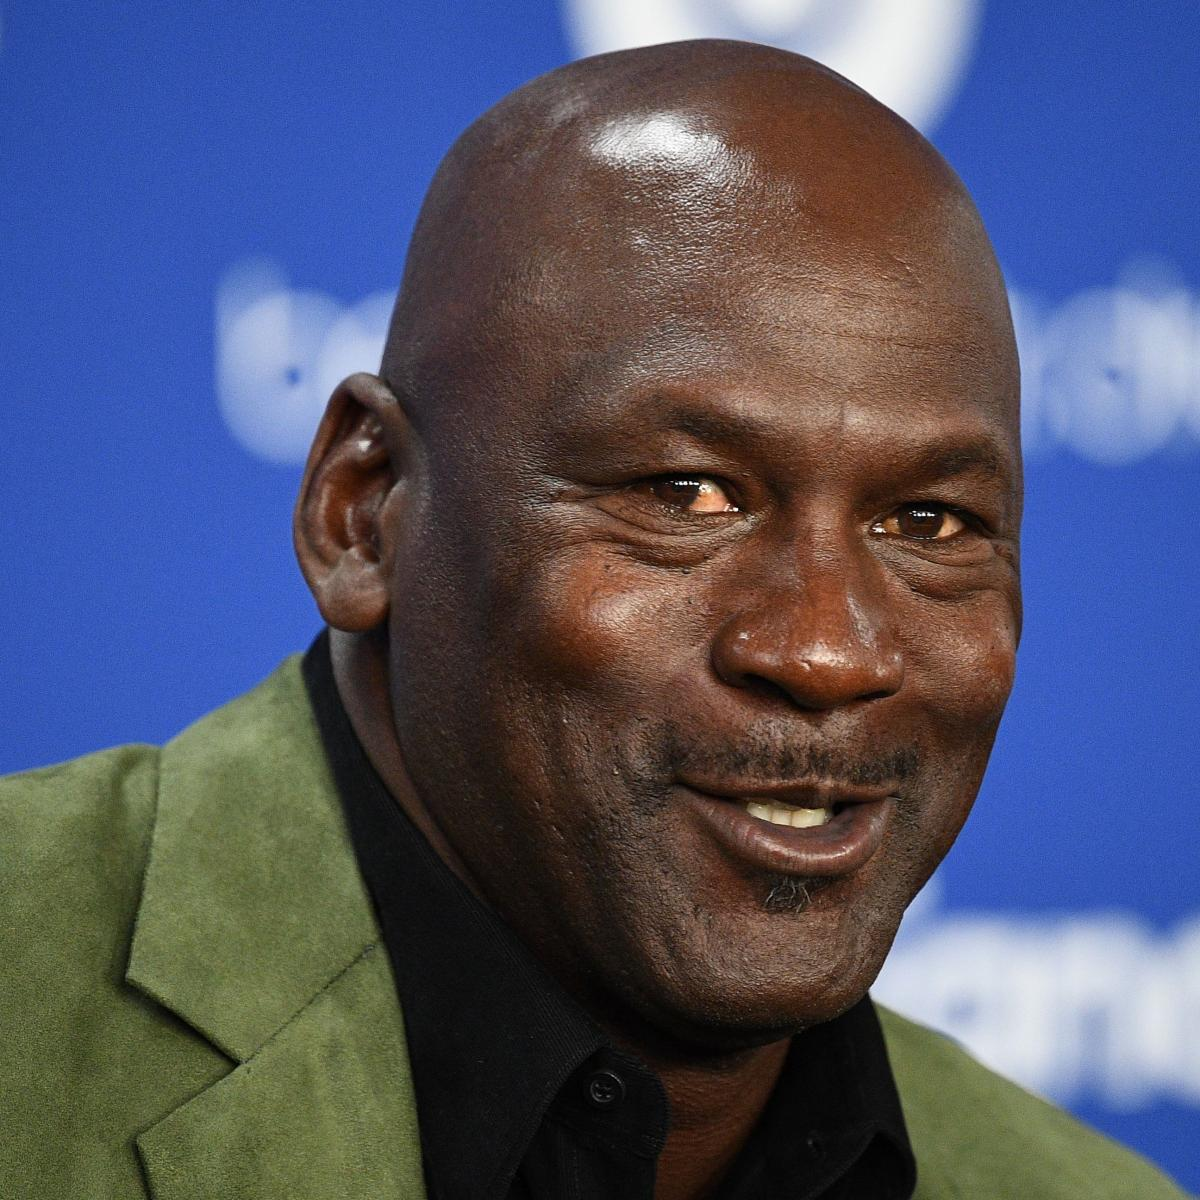 Michael Jordan on LeBron James Comparisons: 'We Play in Different Eras'